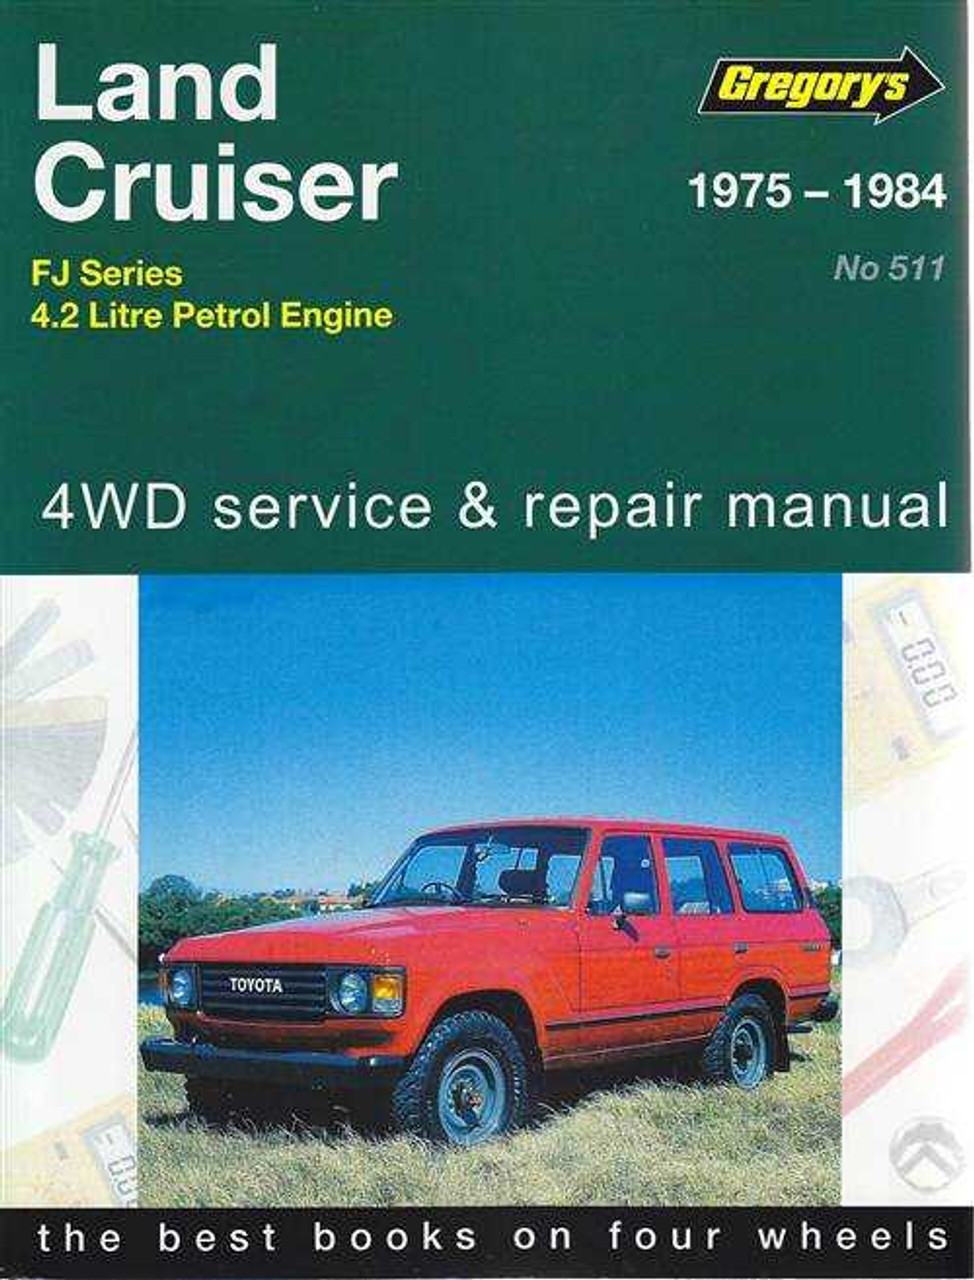 toyota land cruiser fj series fj40 fj45 fj55 fj60 1975 1984 rh automotobookshop com au fj62 owners manual pdf fj62 owners manual pdf